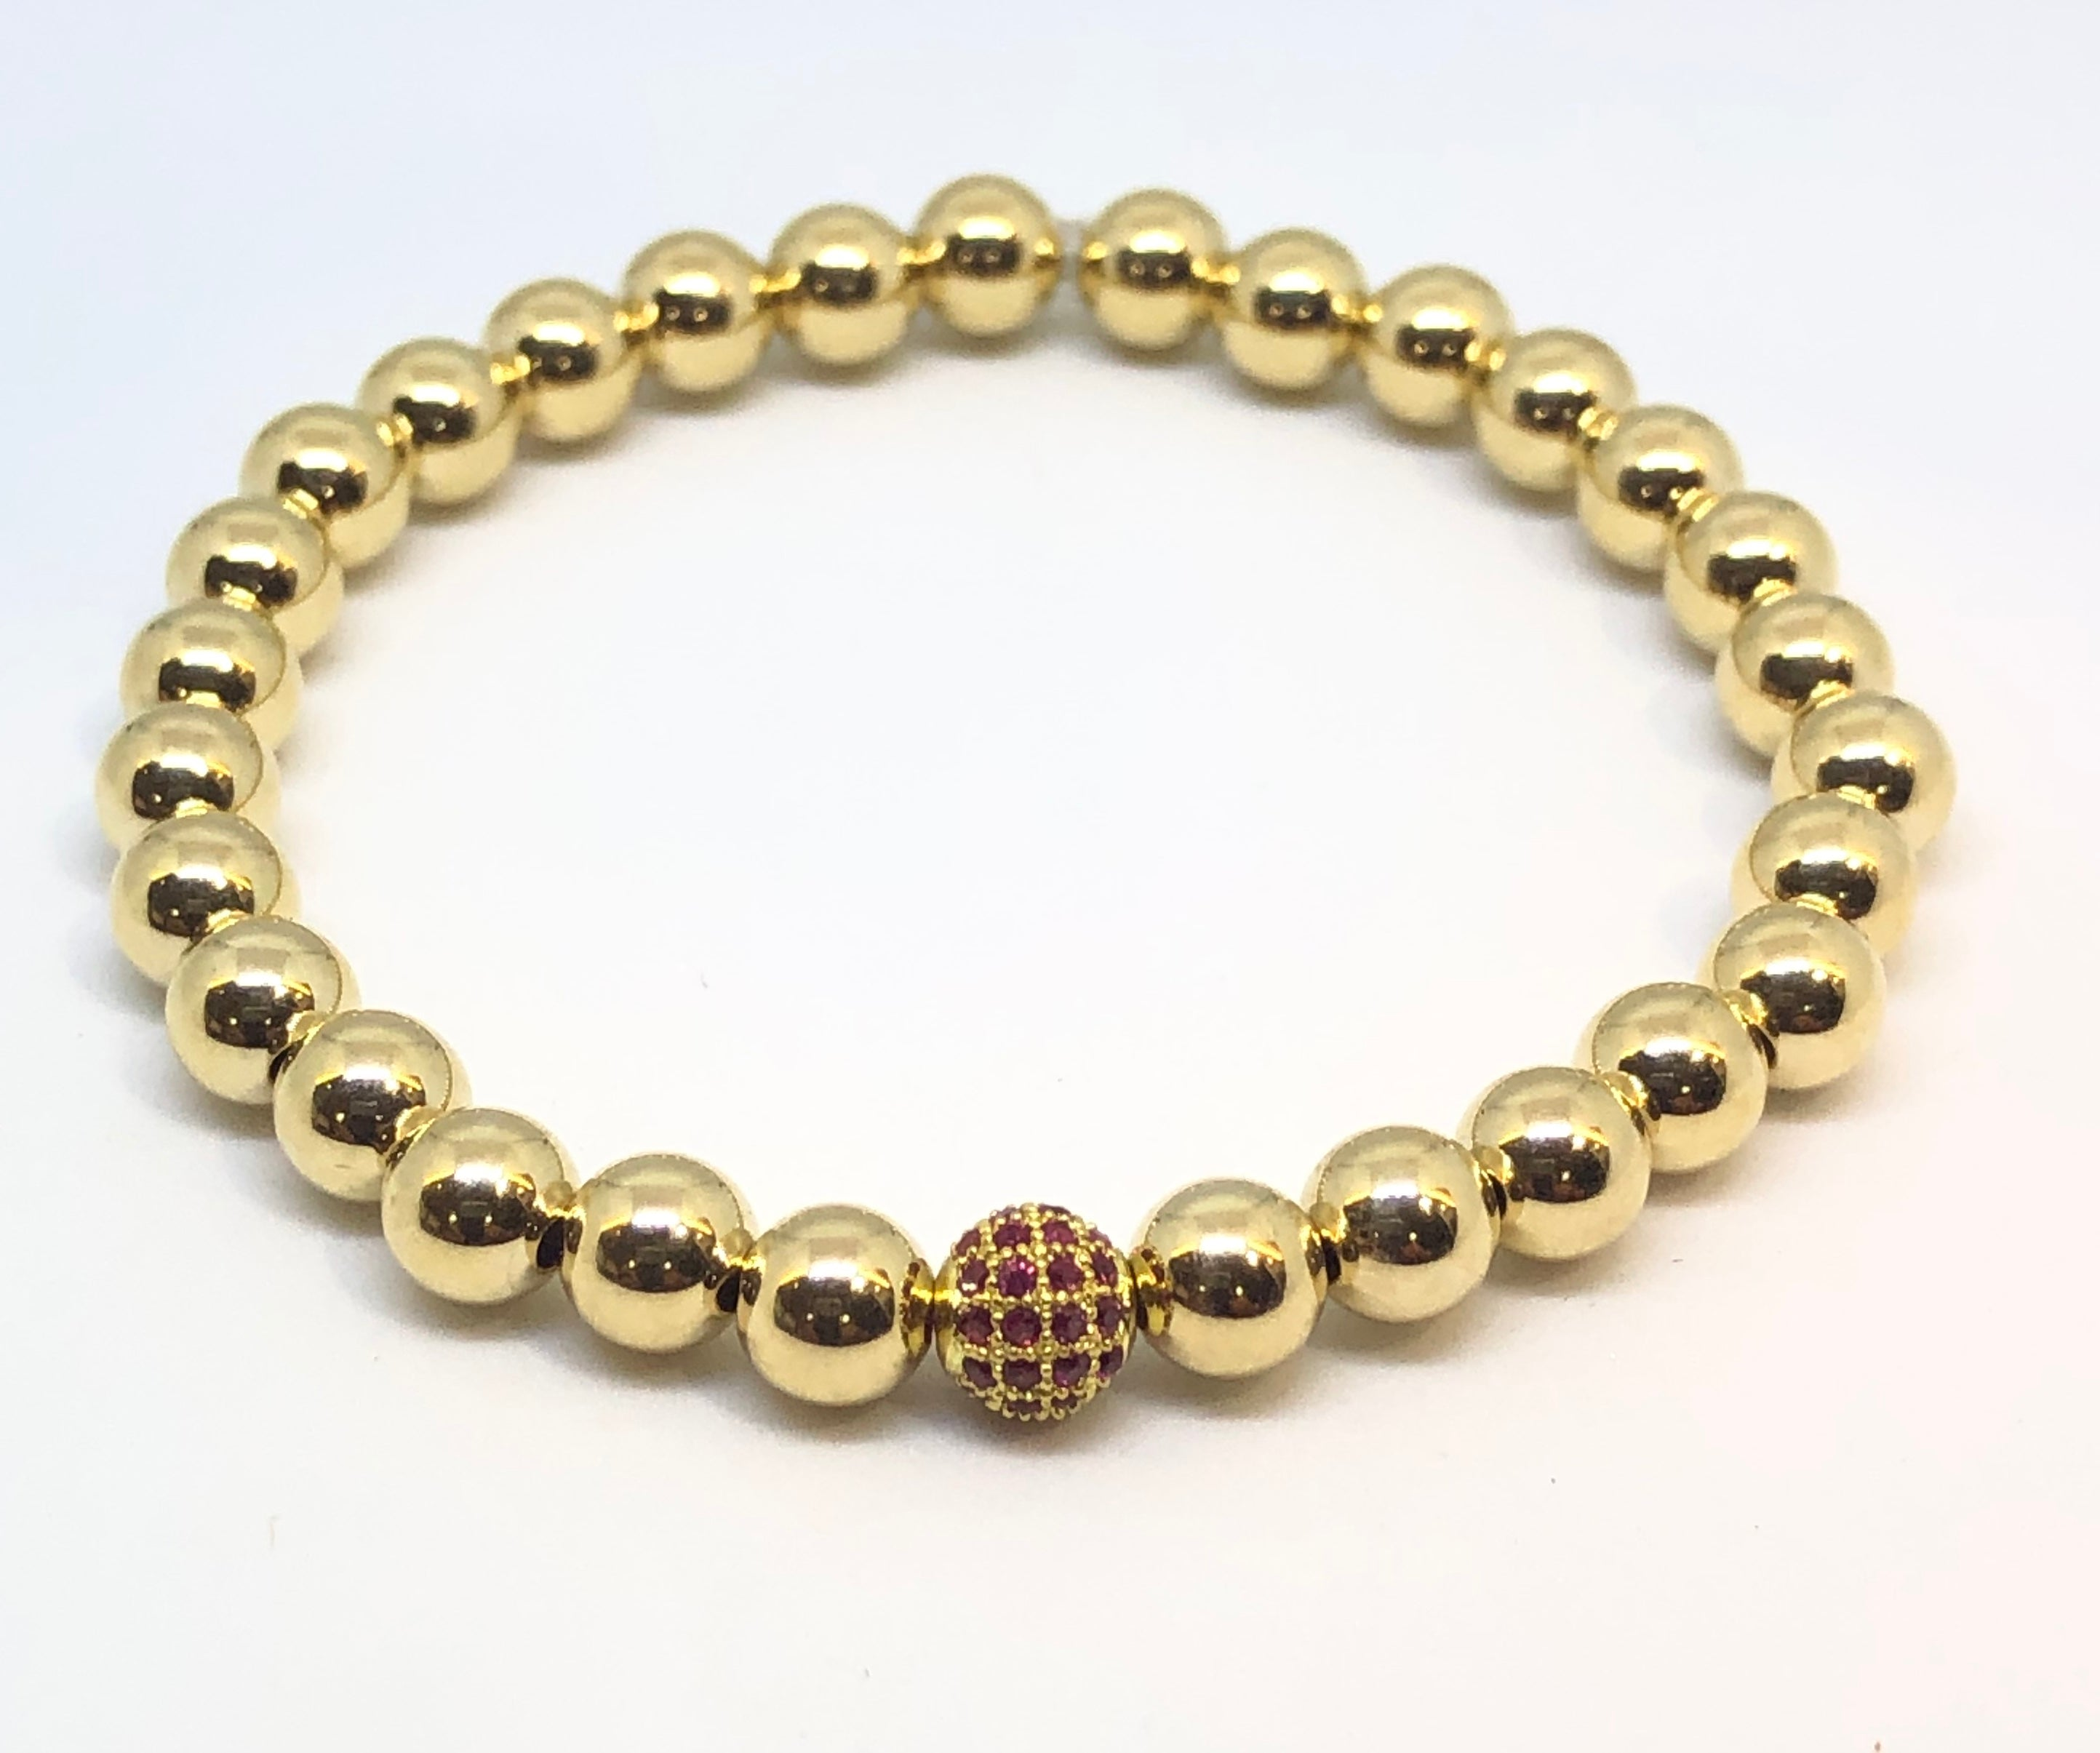 6mm 14kt Gold Filled Bead Bracelet with Jeweled Pink Disco Ball